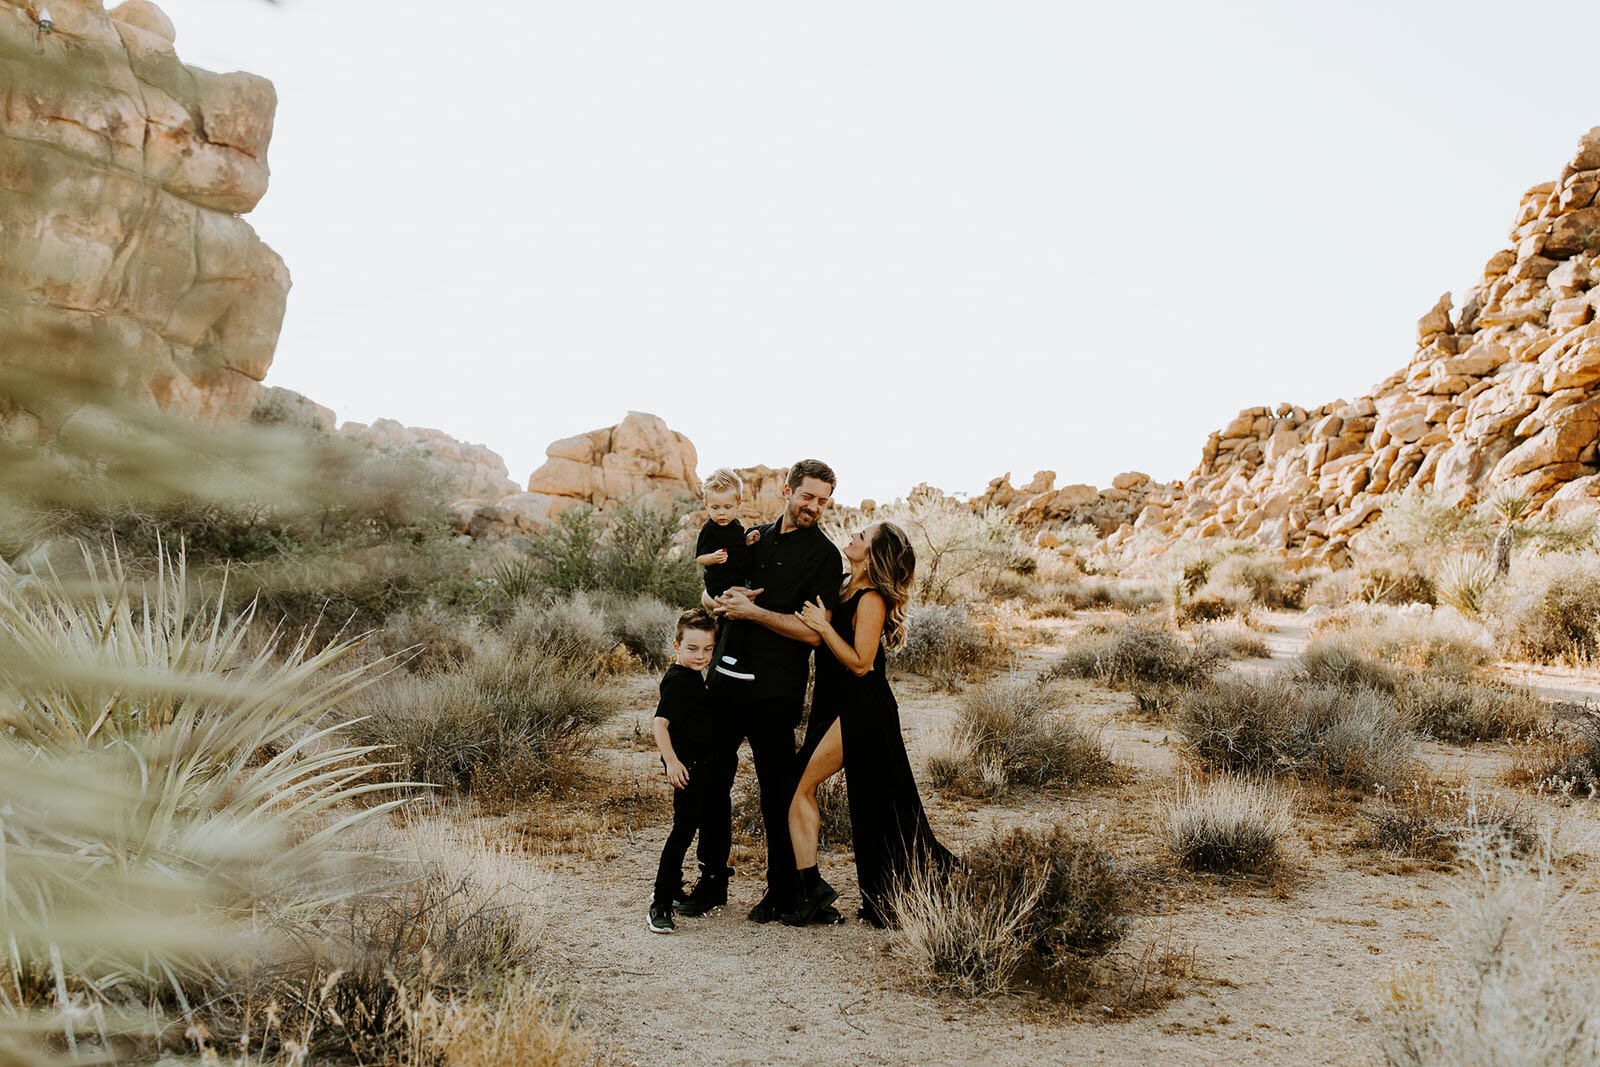 joshua-tree-family-photos-2019-2835.jpg